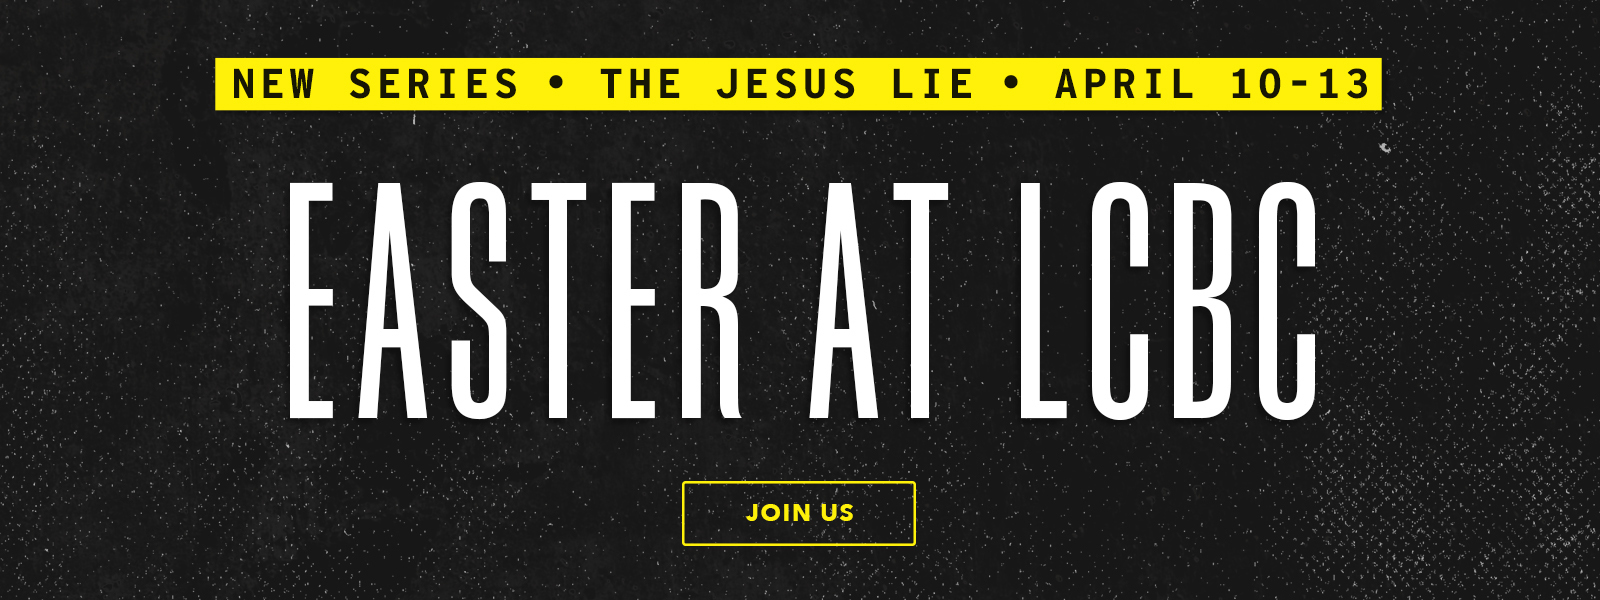 Join us For Easter Online